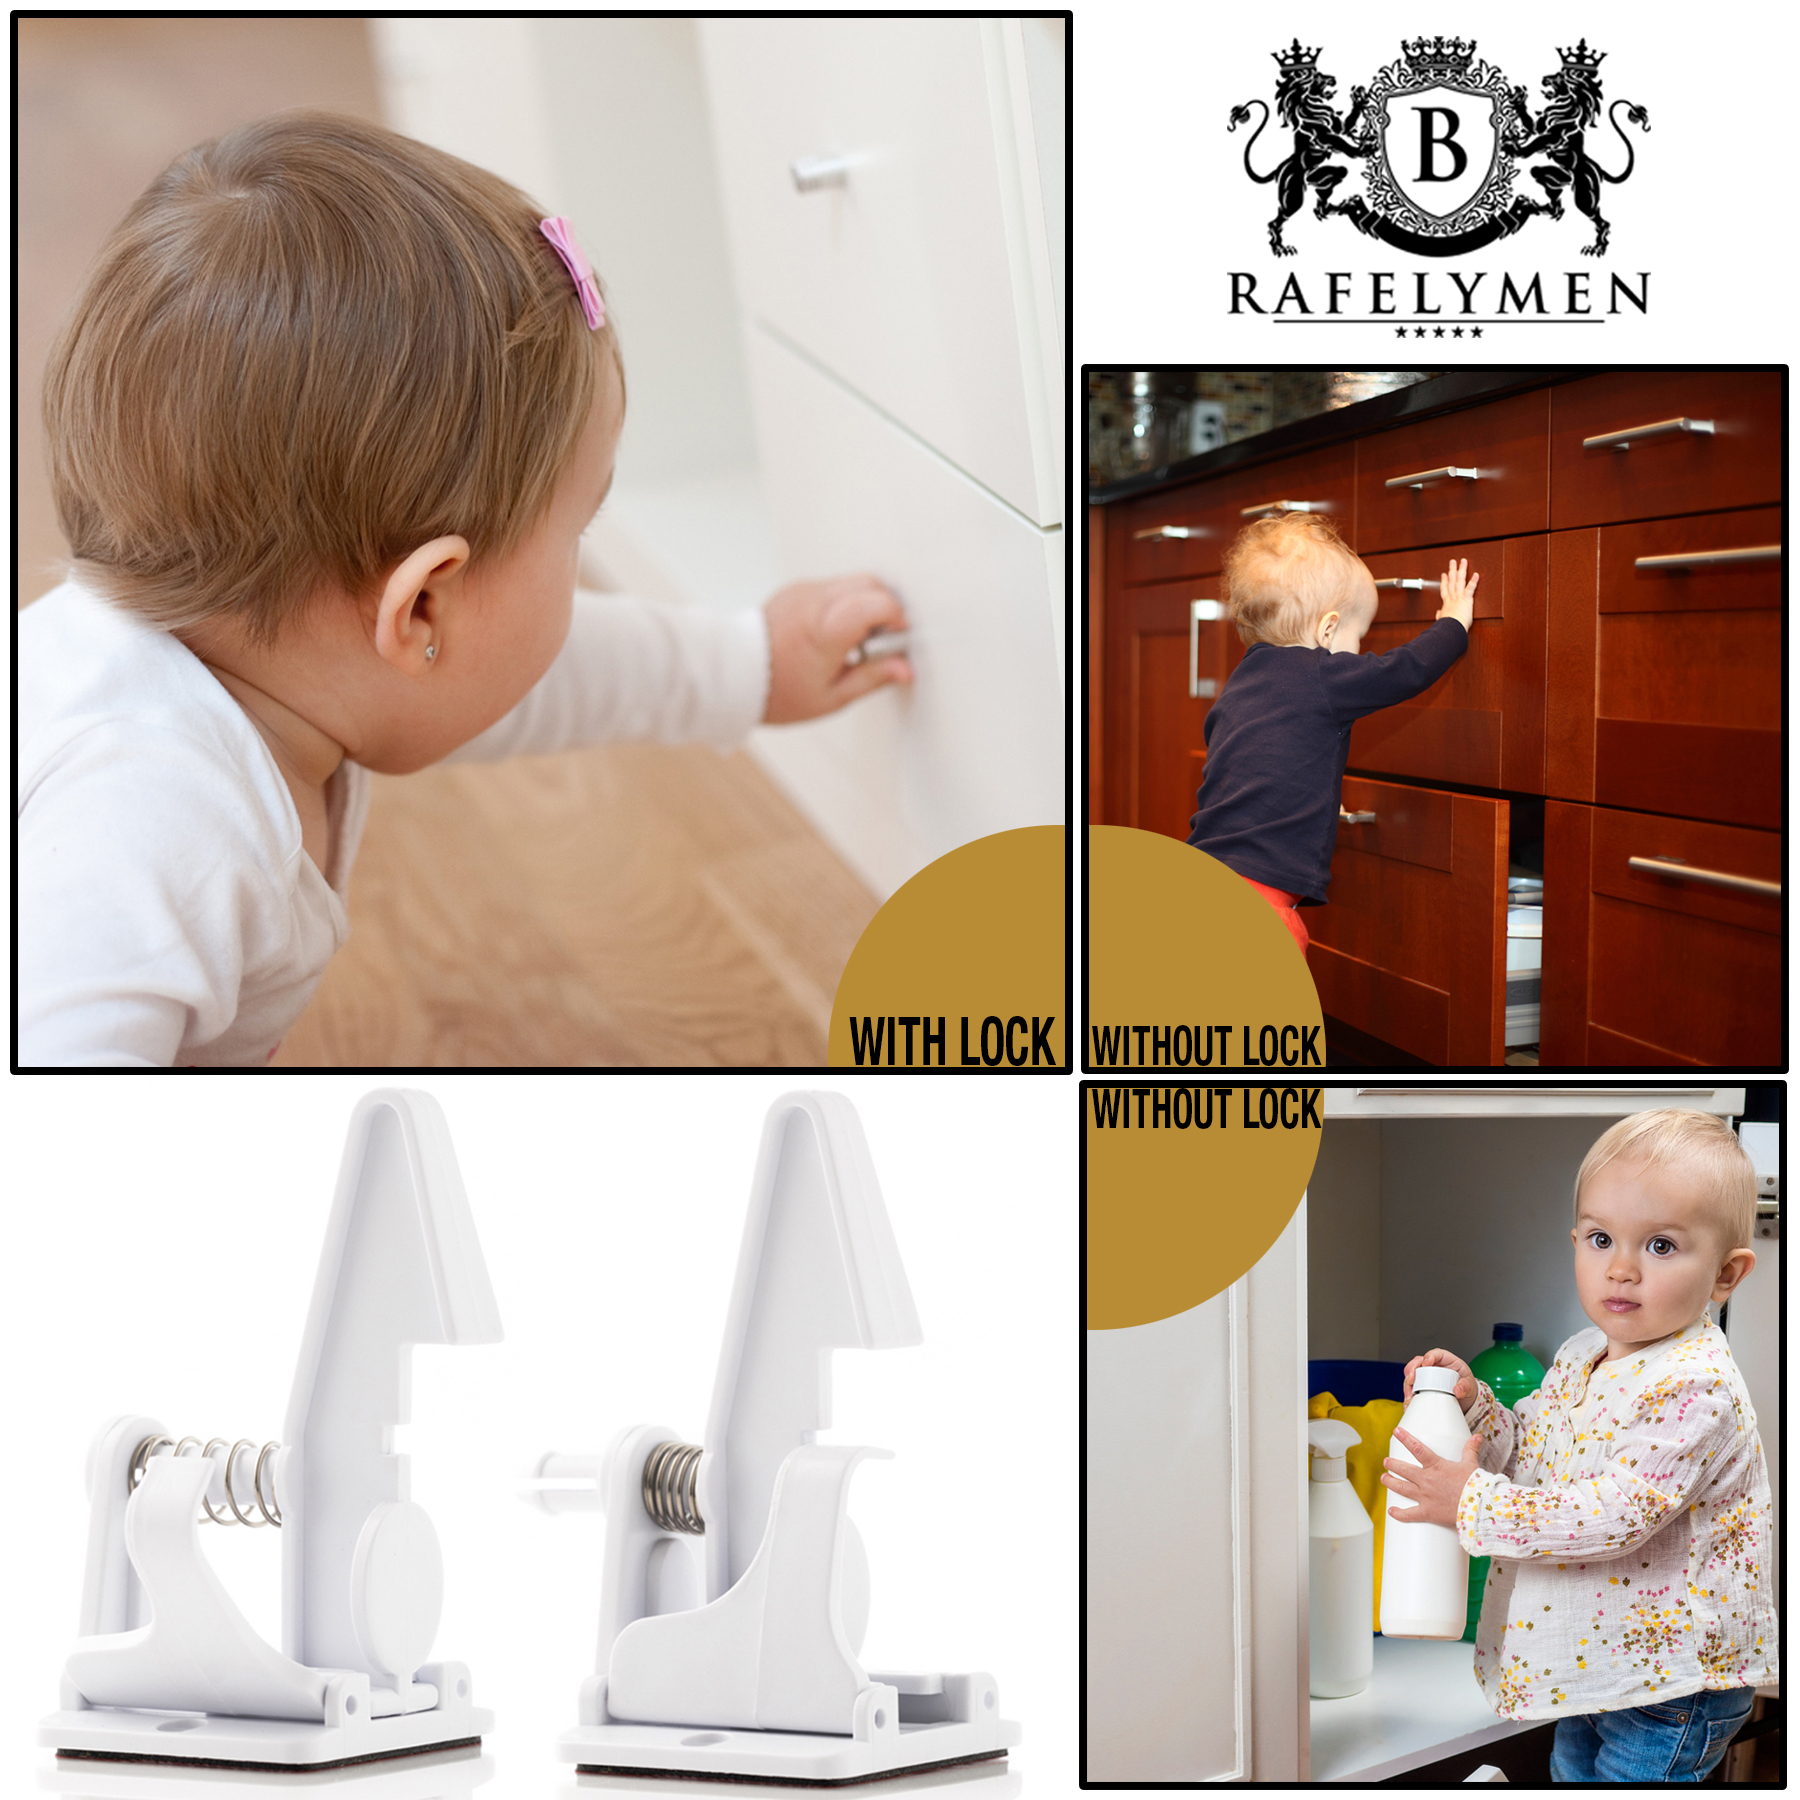 A Parents' Dream Is When Childproofing Their Home Is Made Easy!